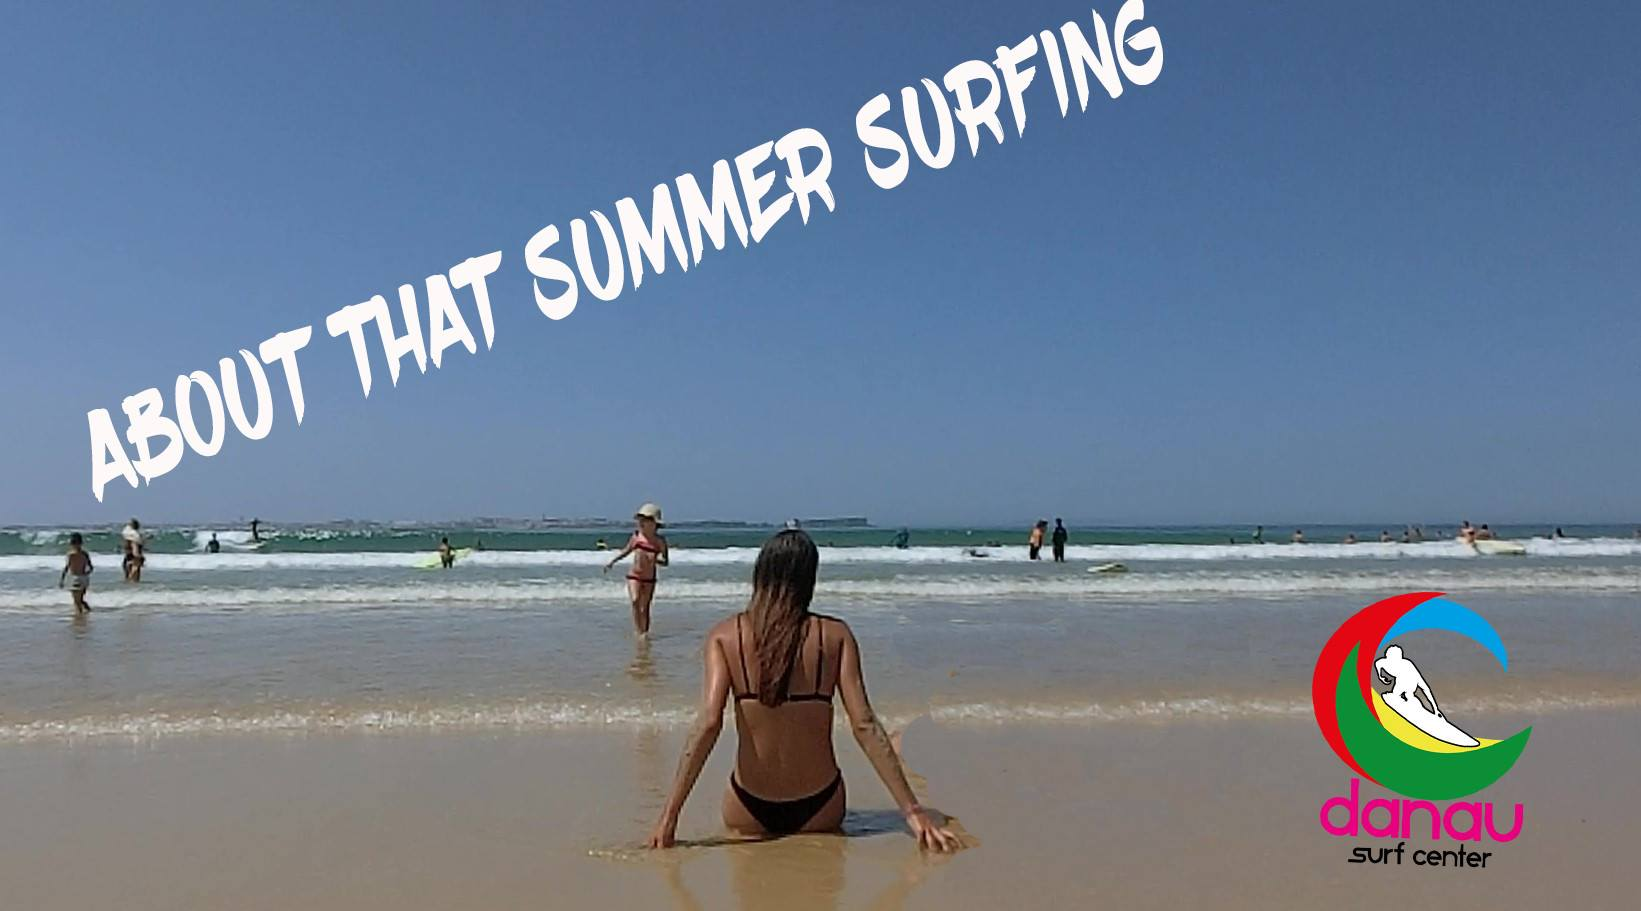 About that Summer Surf lessons